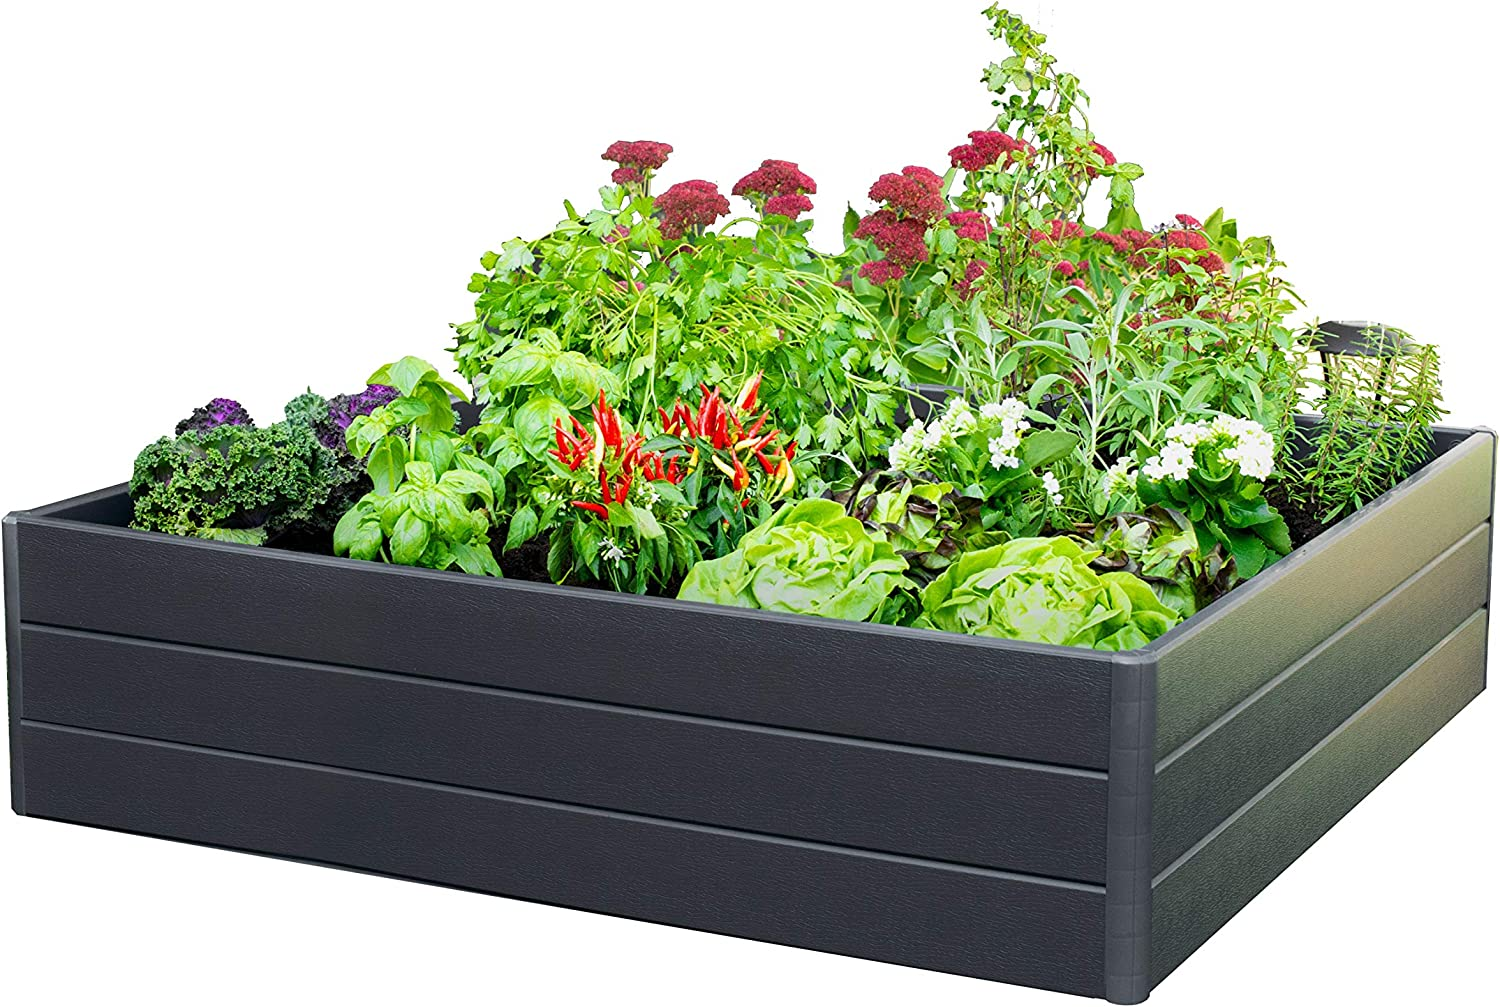 "Nuvue Products 26008 L x 44.5"" W x 11.5"" H, Dark Gray Raised Patio Garden Box"